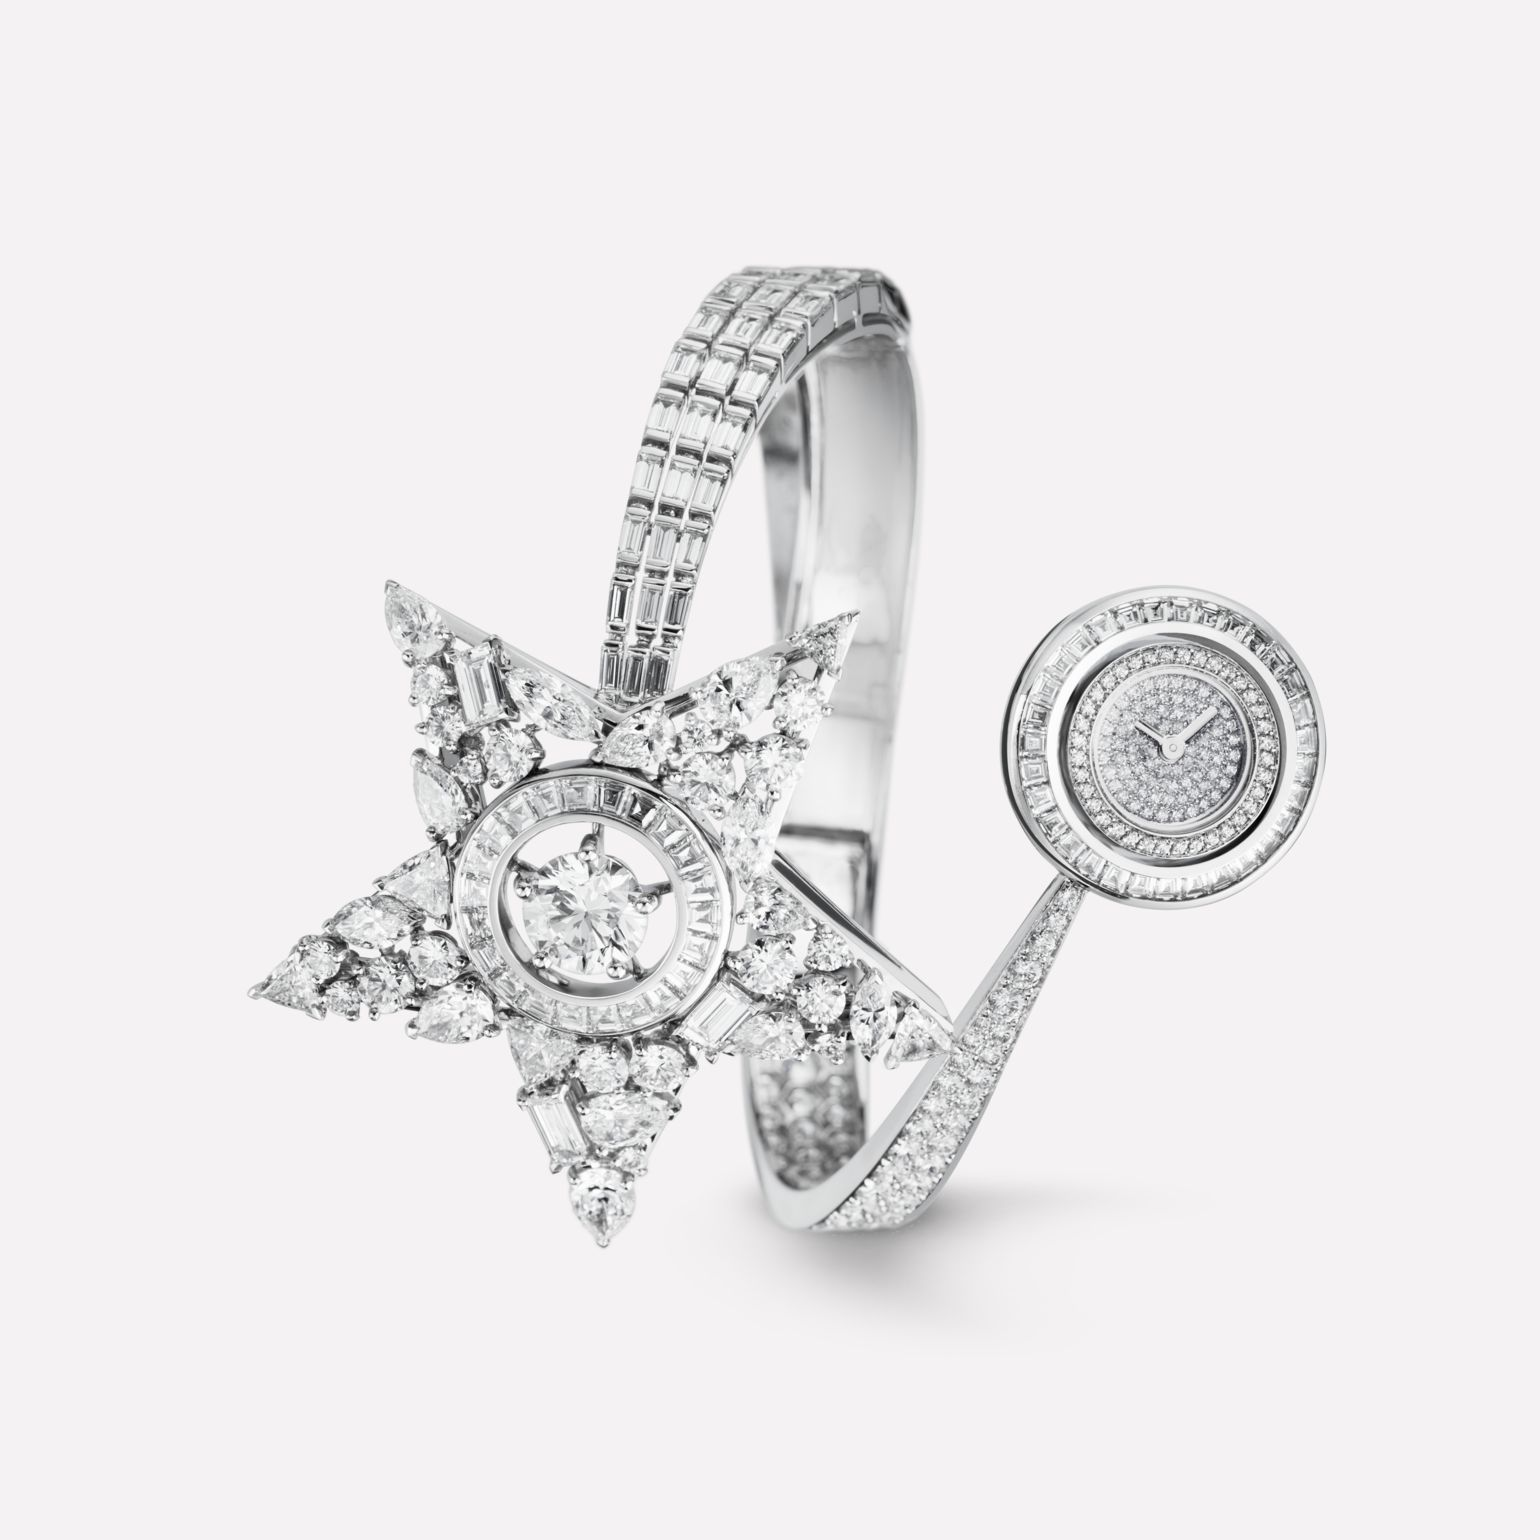 Comète Jewellery Watch Shooting star motif in 18K white gold, diamonds and central diamond